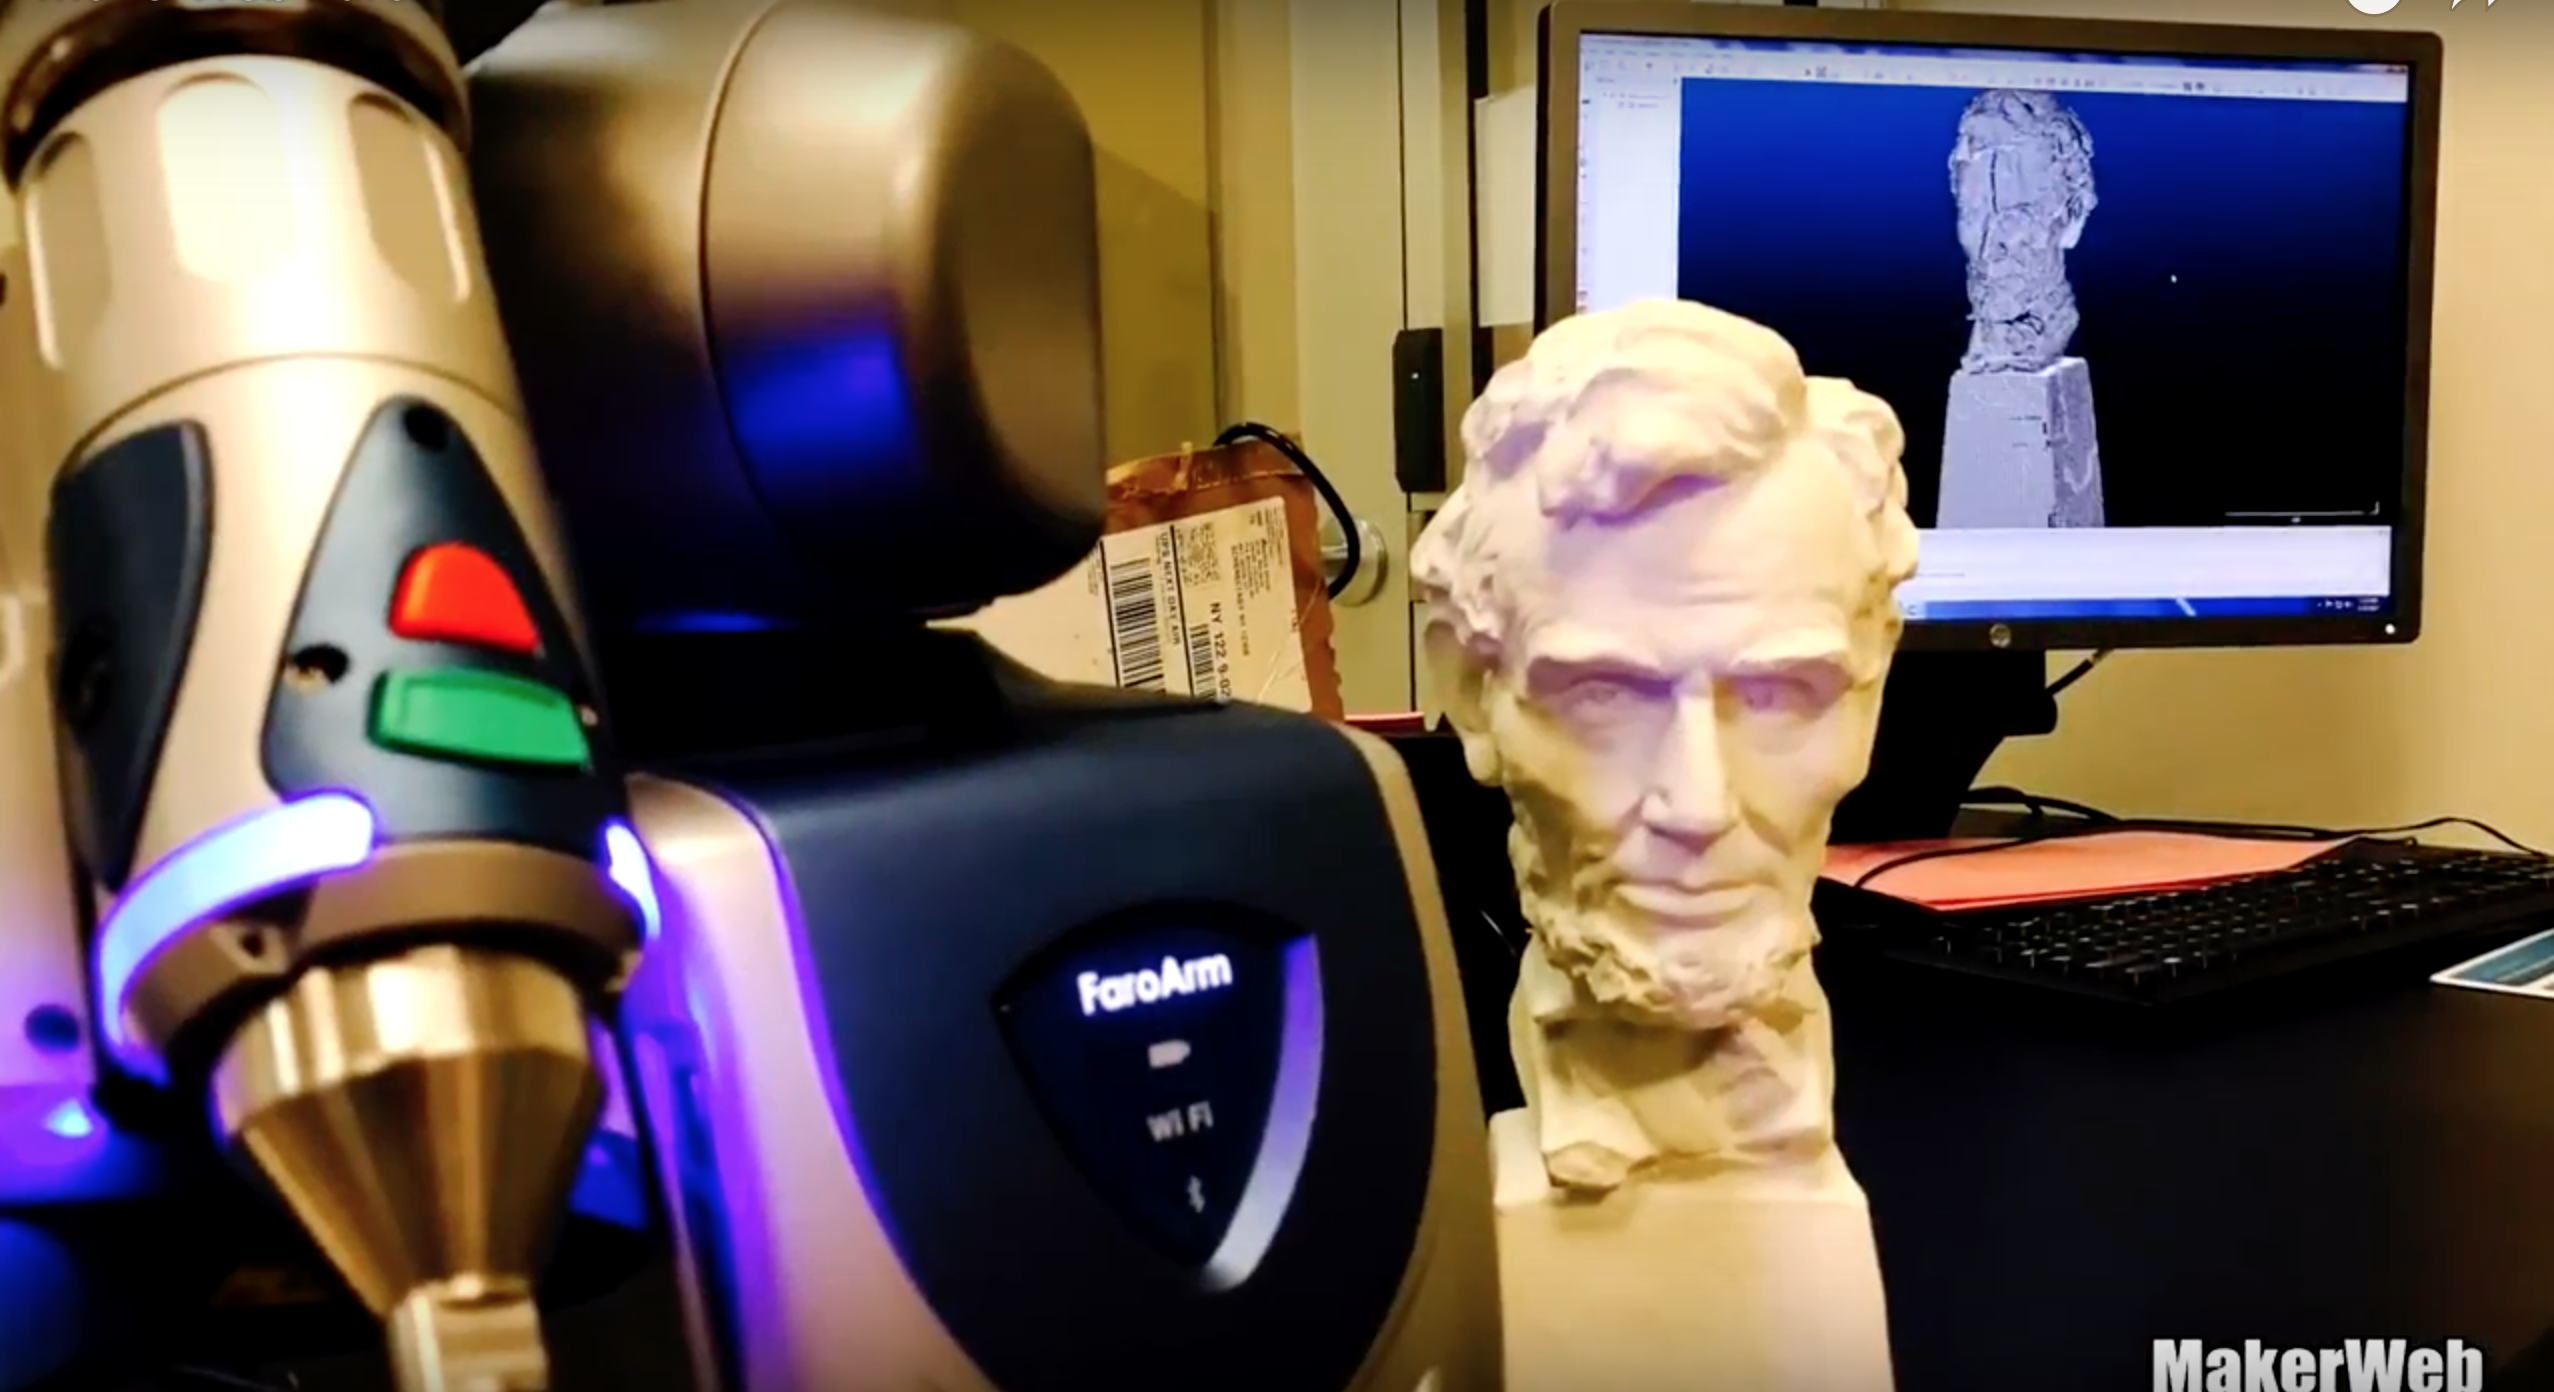 3D Scanning with the FaroArm